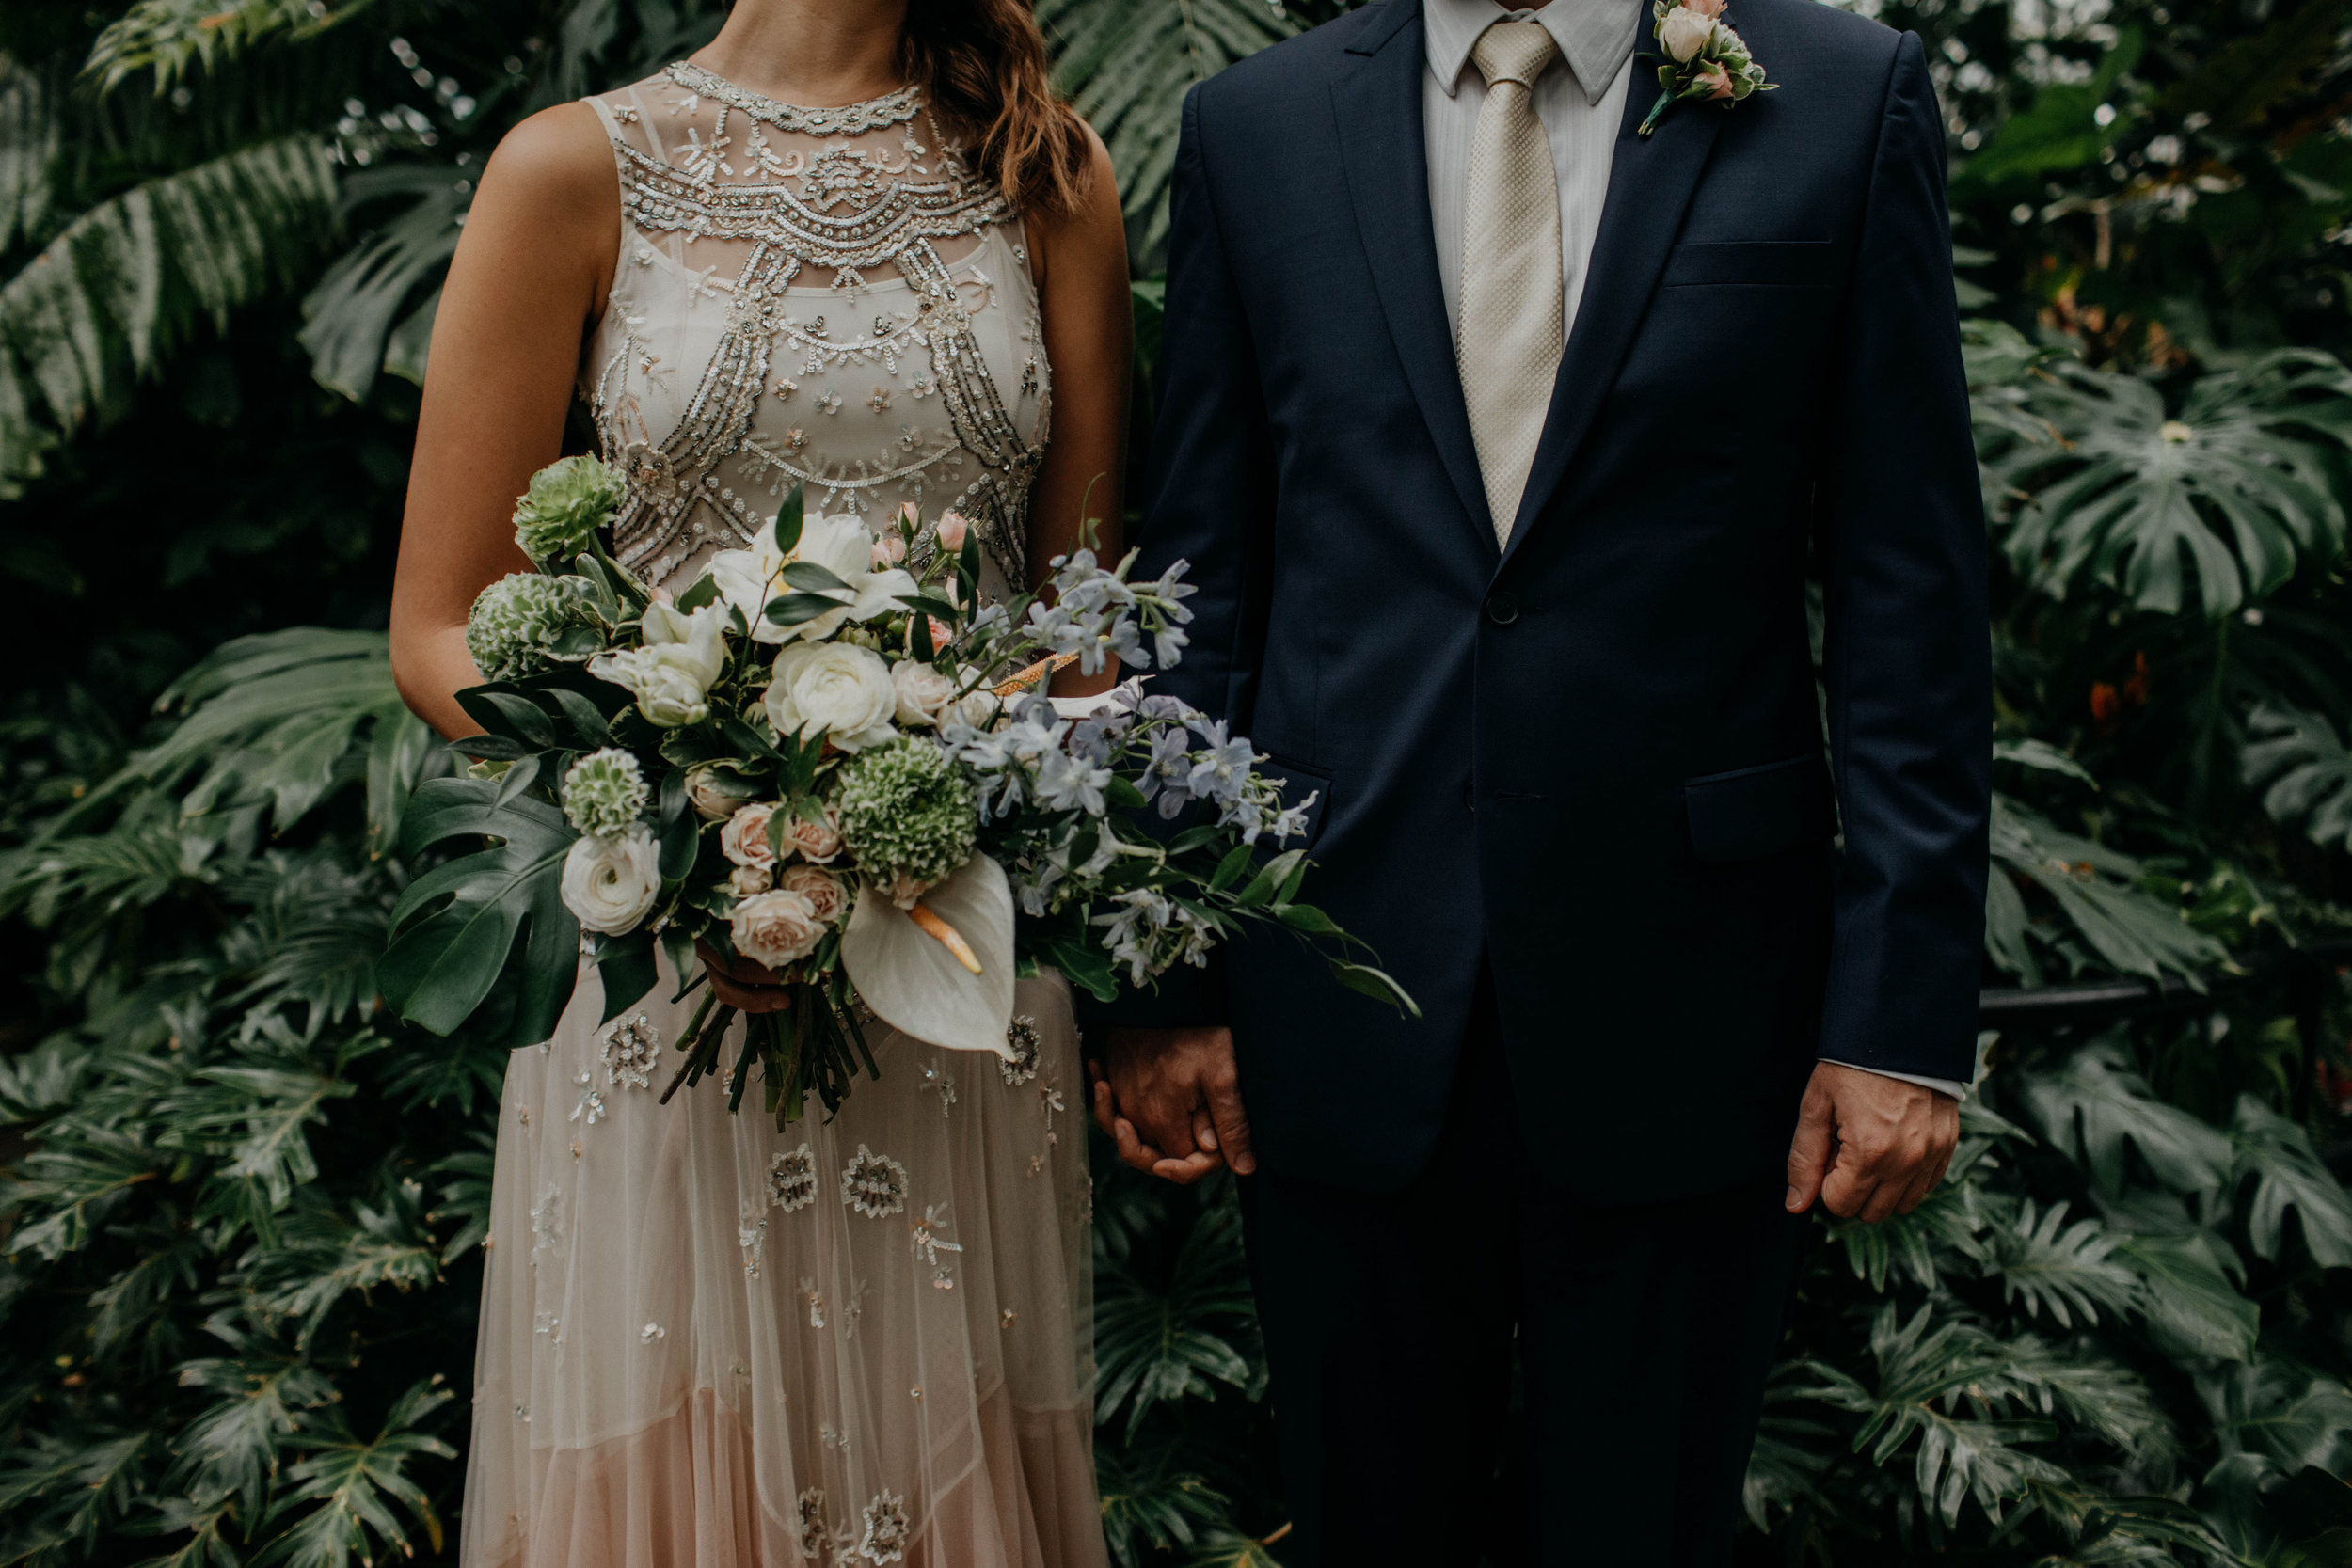 franklin park conservatory wedding columbus ohio wedding photographer grace e jones photography116.jpg